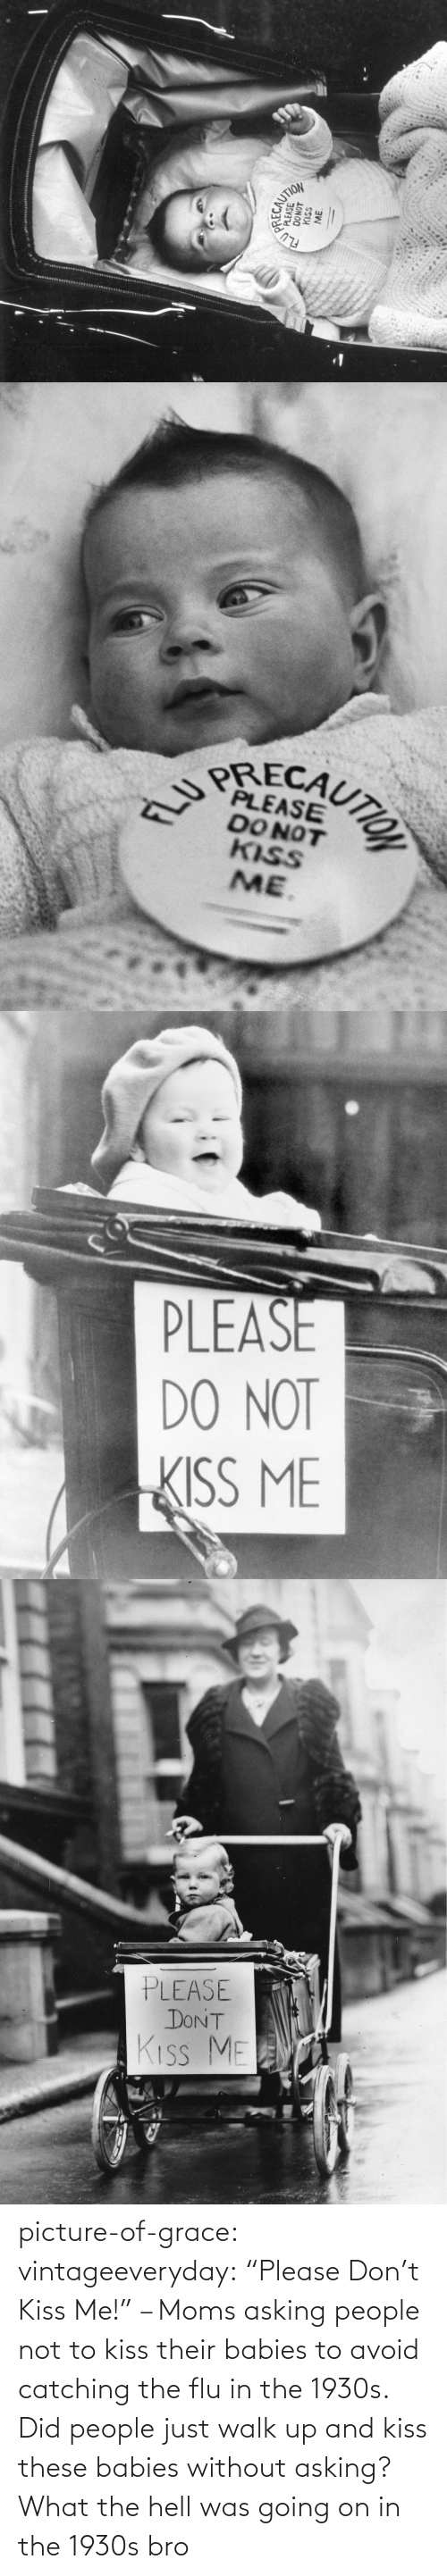 """Moms, Target, and Tumblr: picture-of-grace:  vintageeveryday: """"Please Don't Kiss Me!"""" – Moms asking people not to kiss their babies to avoid catching the flu in the 1930s.   Did people just walk up and kiss these babies without asking? What the hell was going on in the 1930s bro"""